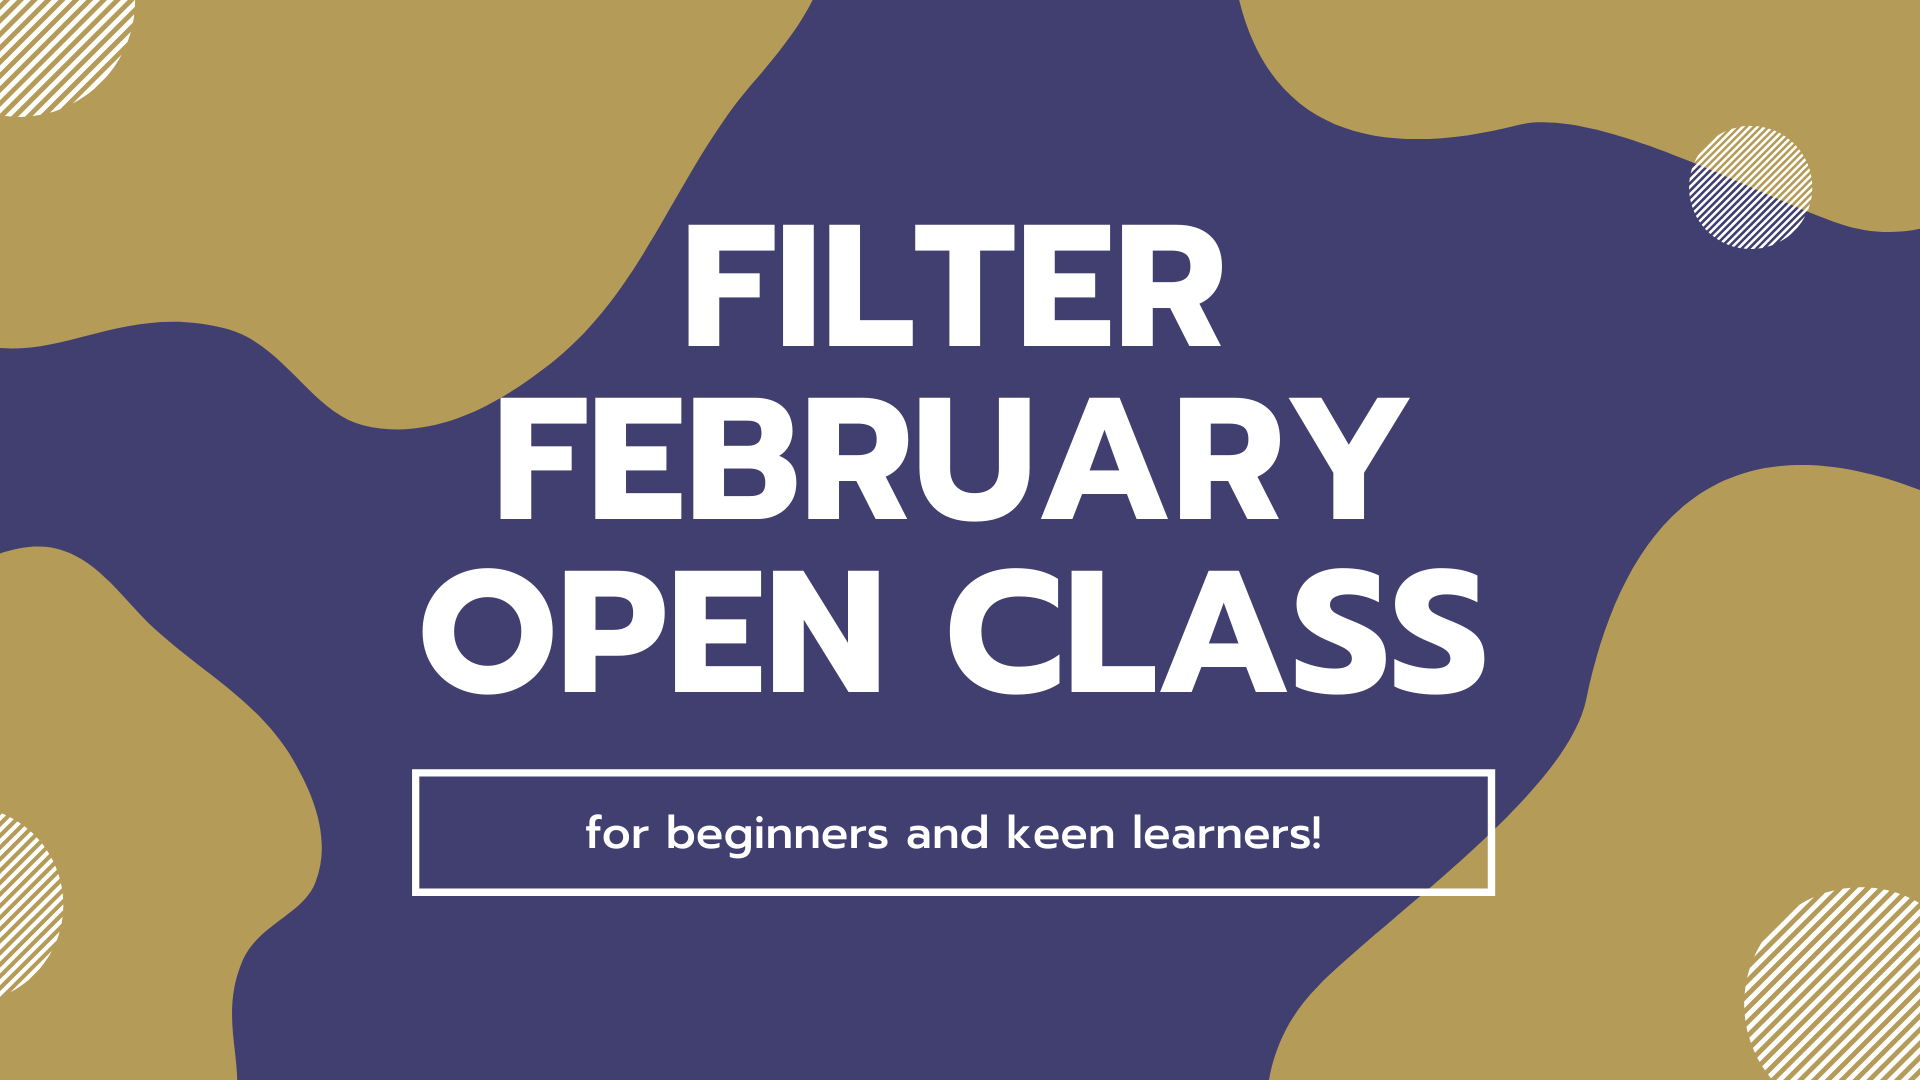 Filter February (OPEN CLASS)